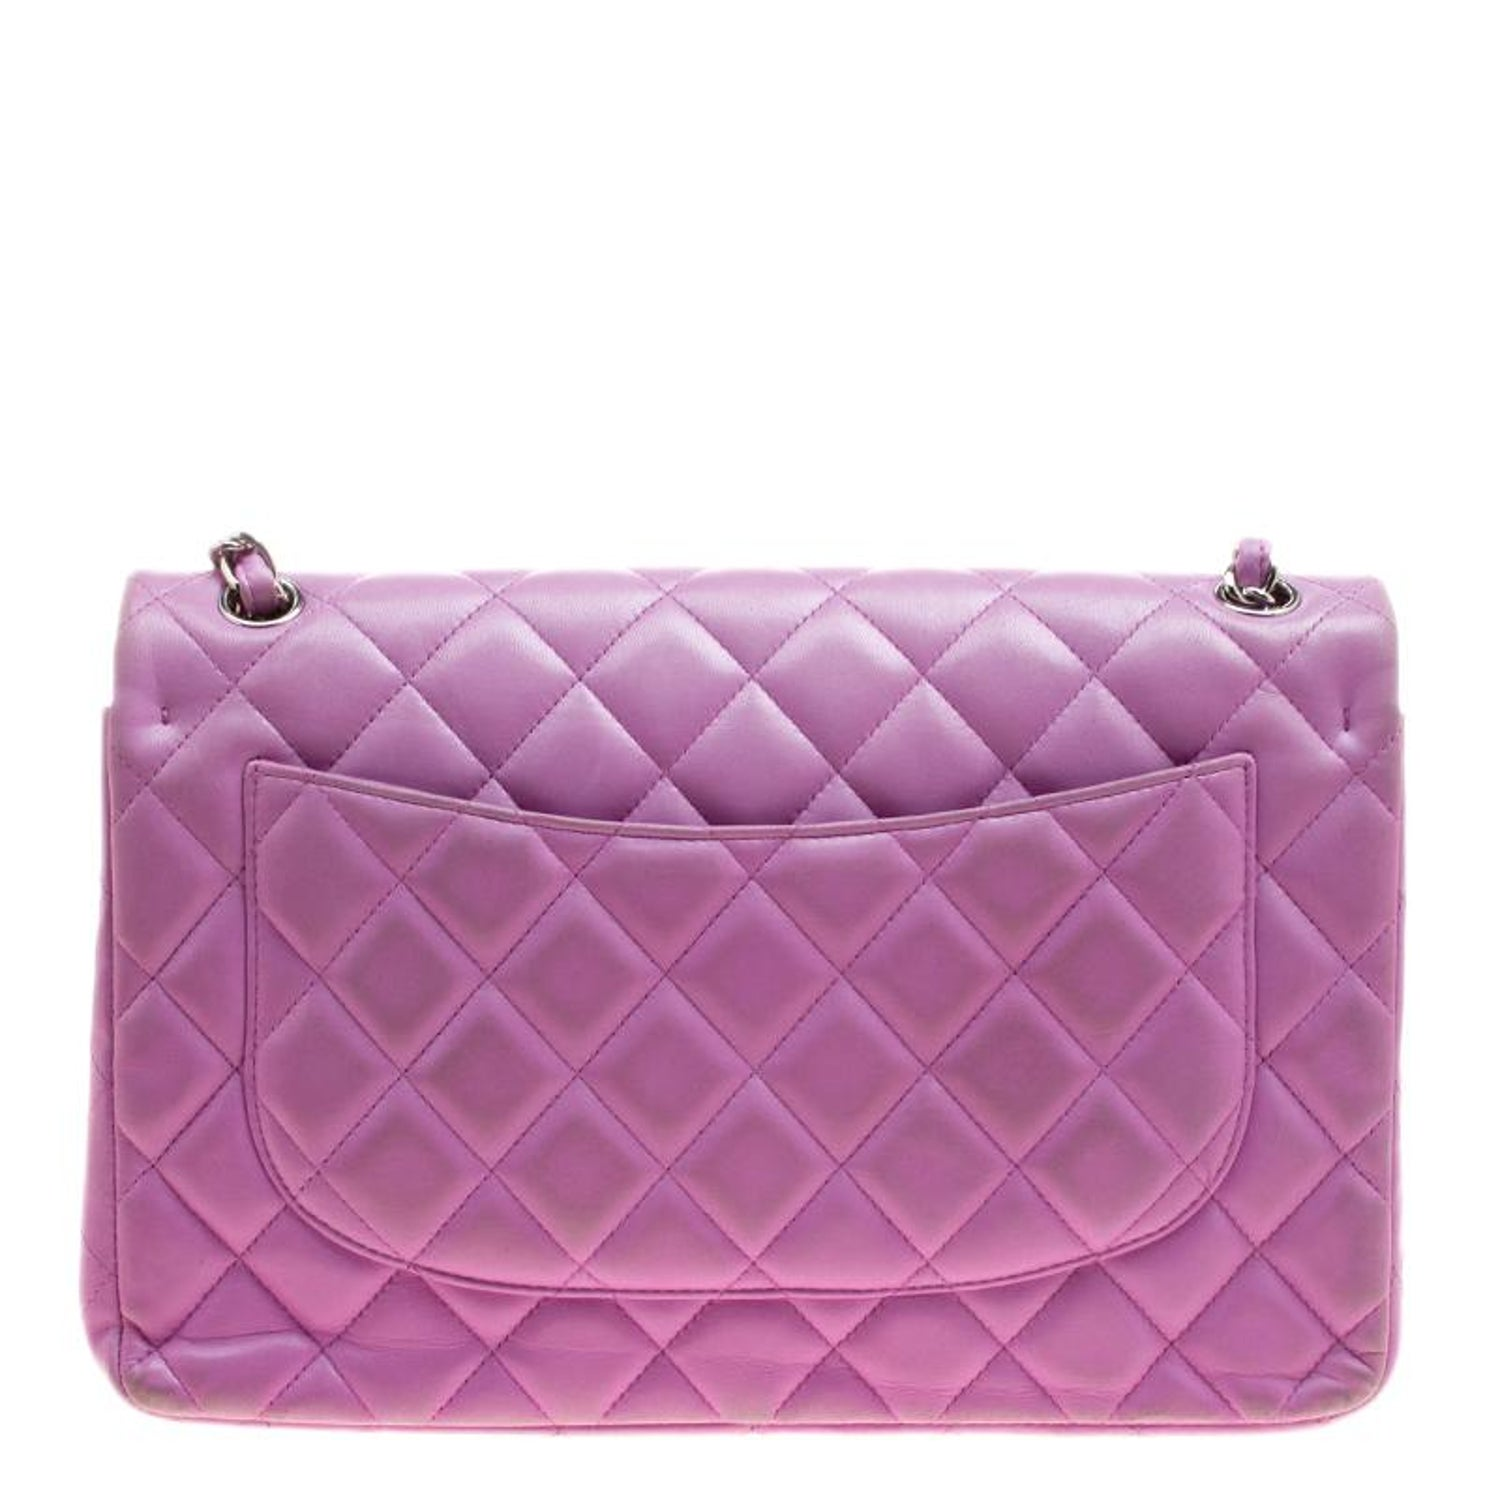 a38197f72d15 Chanel Lilac Quilted Leather Jumbo Classic Double Flap Bag at 1stdibs